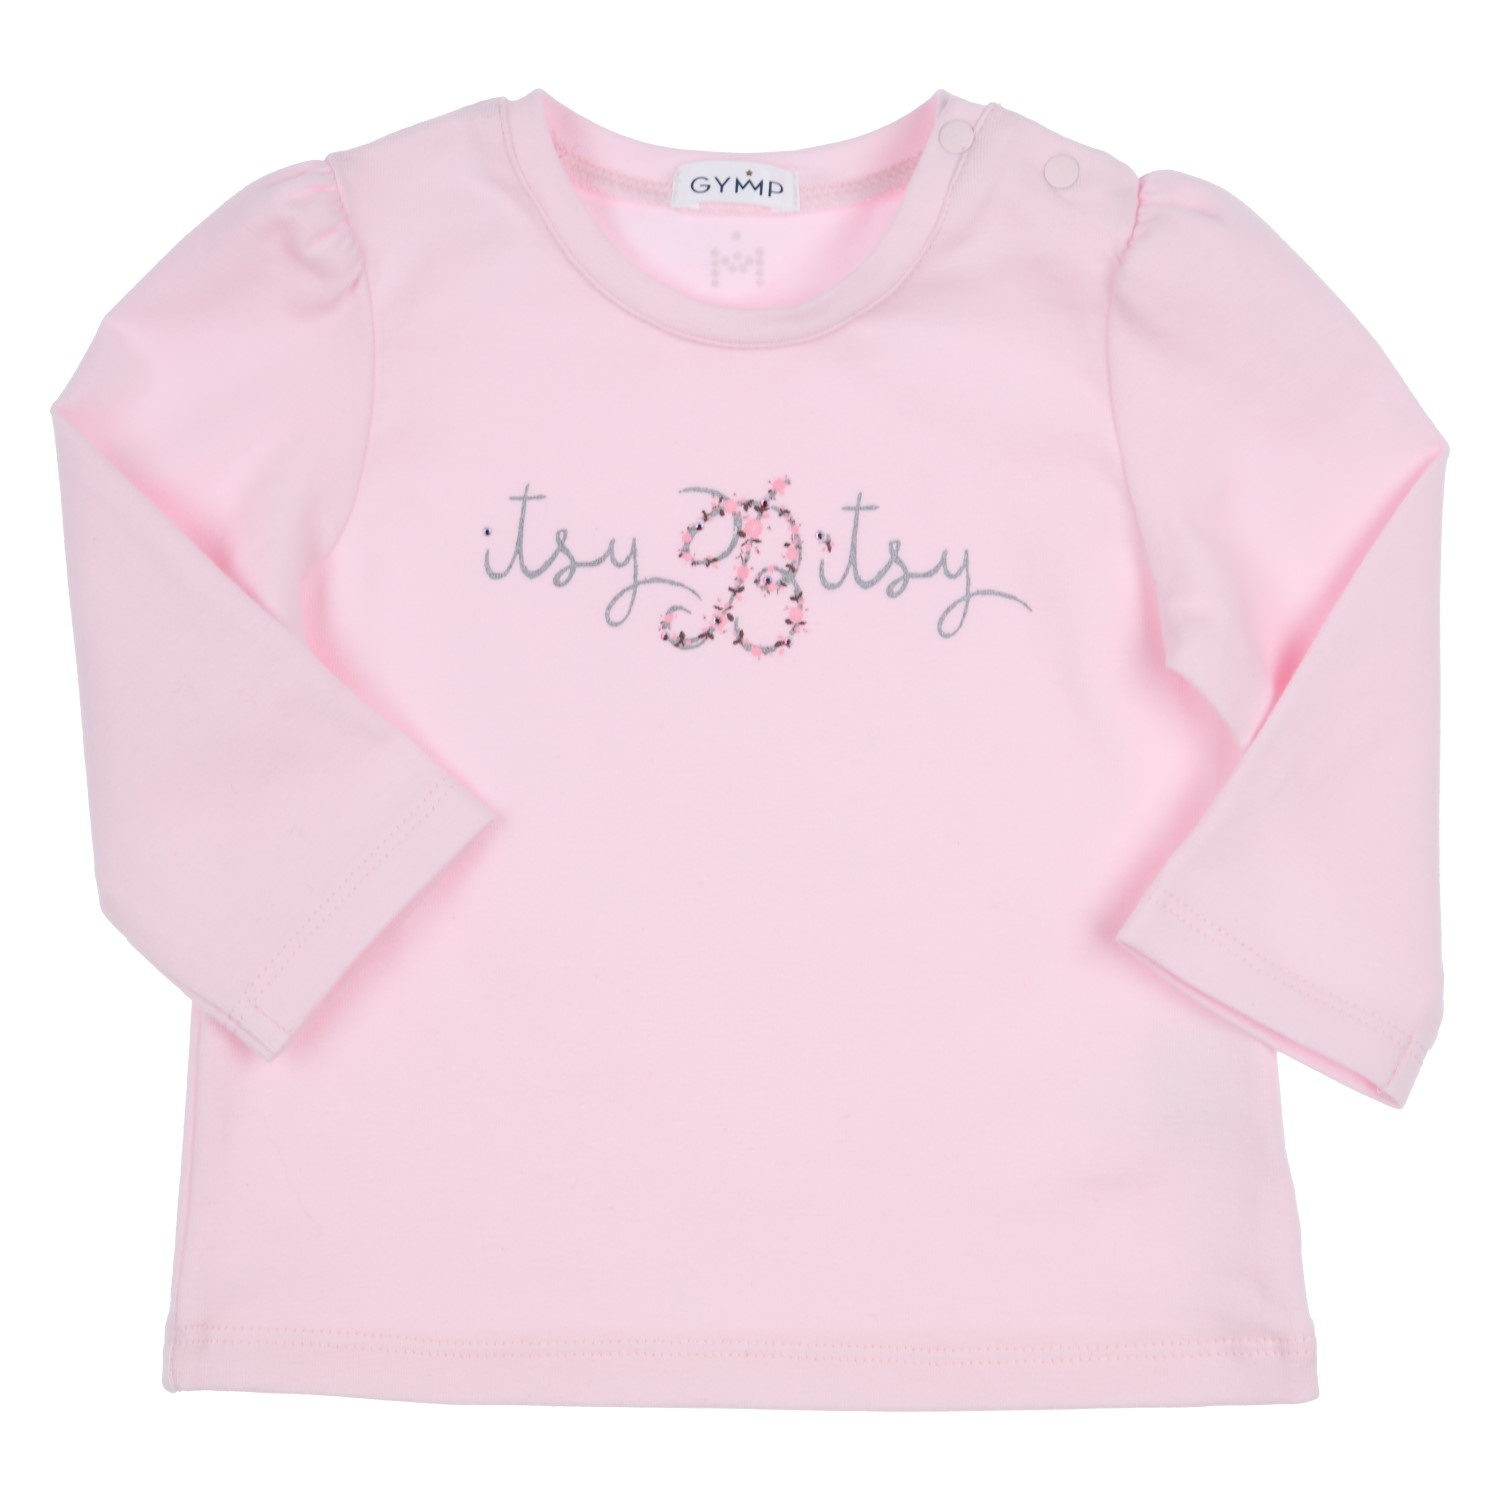 Gymp Gymp 'Itsy Bitsy' Long Sleeve Top - 1649